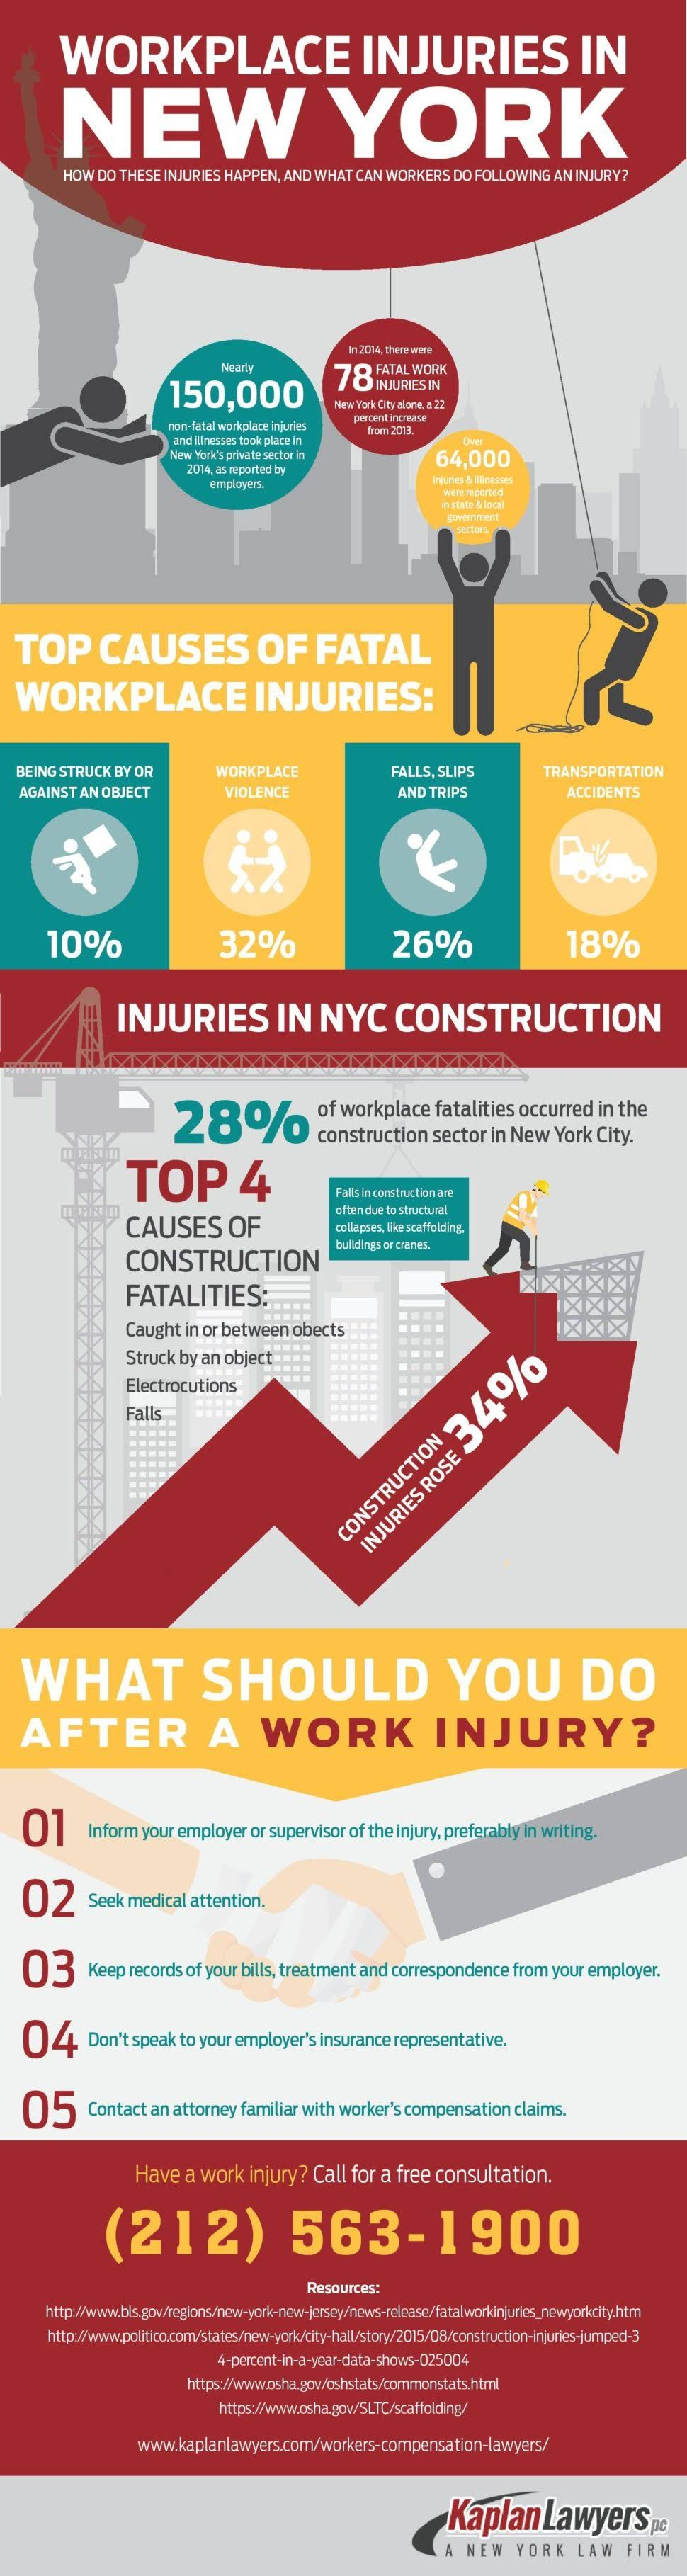 Workplace Injuries In New York #infographic